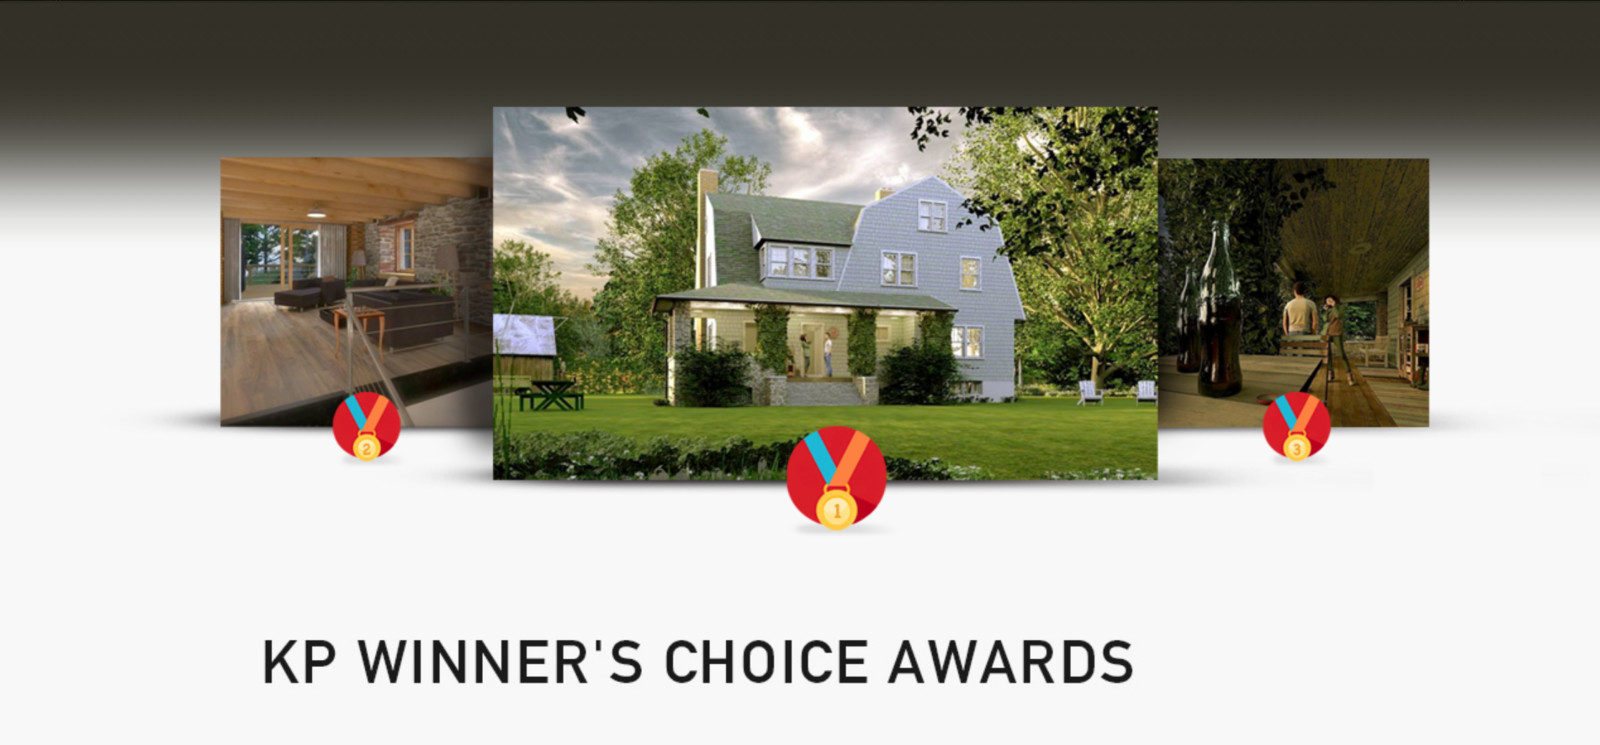 Kemp Productions won First, Second and Third Prize in the Shaderlight 2014 Render Contest. Our 6 entries had the top positions.  We decided to share these awards in a special way.  http://www.kemppro.com/KP_3D-Winners-choice-awards_2014.html